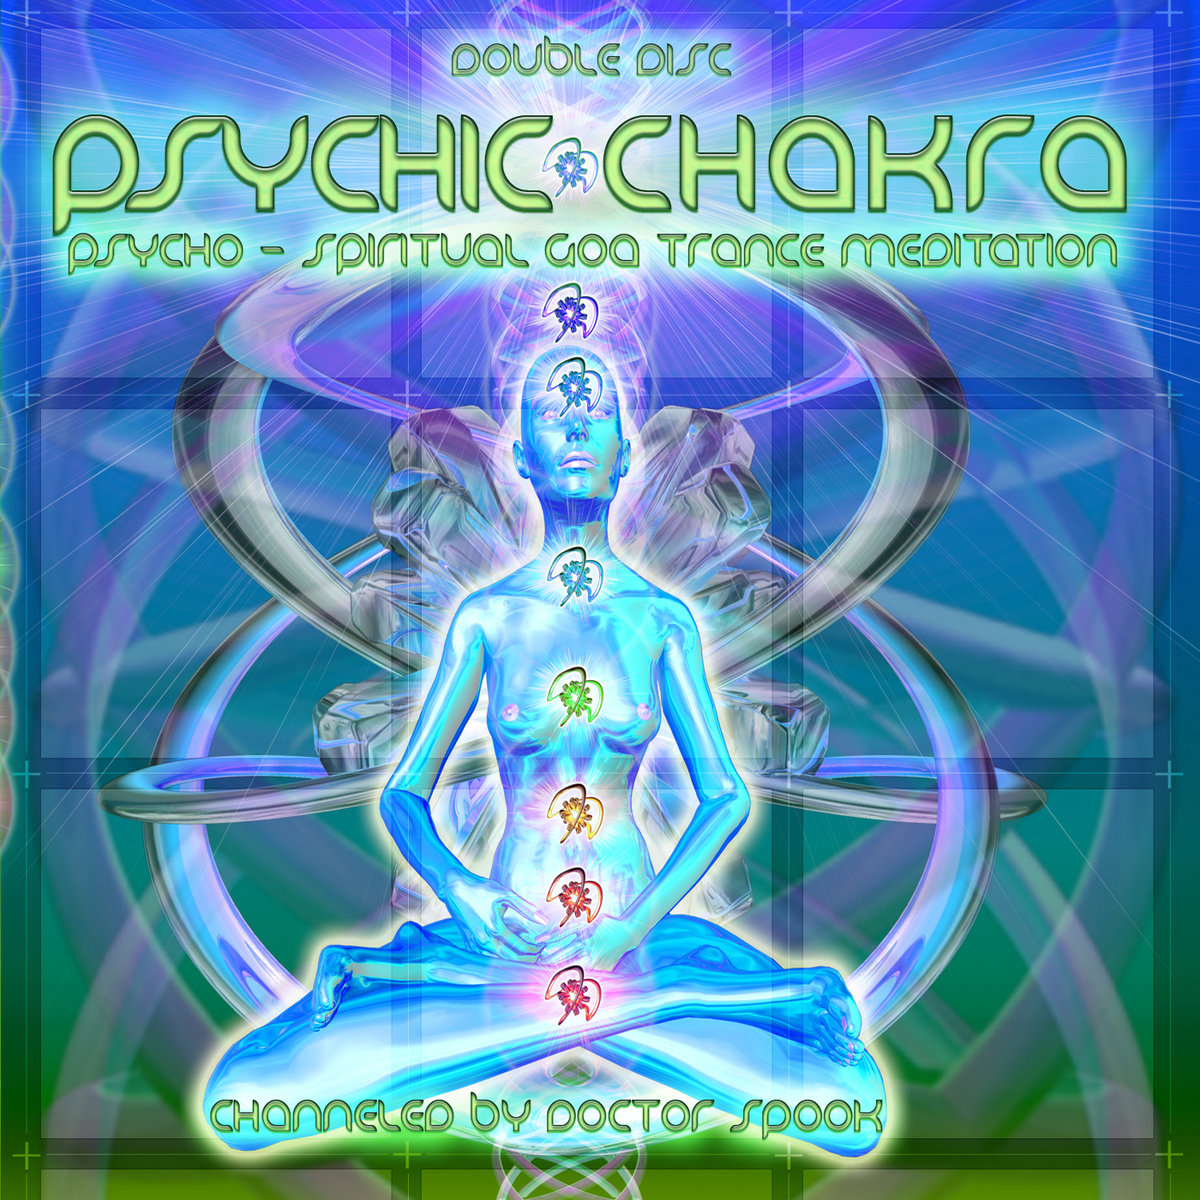 Tryptamind - Organic Wizdom @ 'Various Artists - Psychic Chakra (Channeled by Dr. Spook)' album (electronic, psychic chakra)